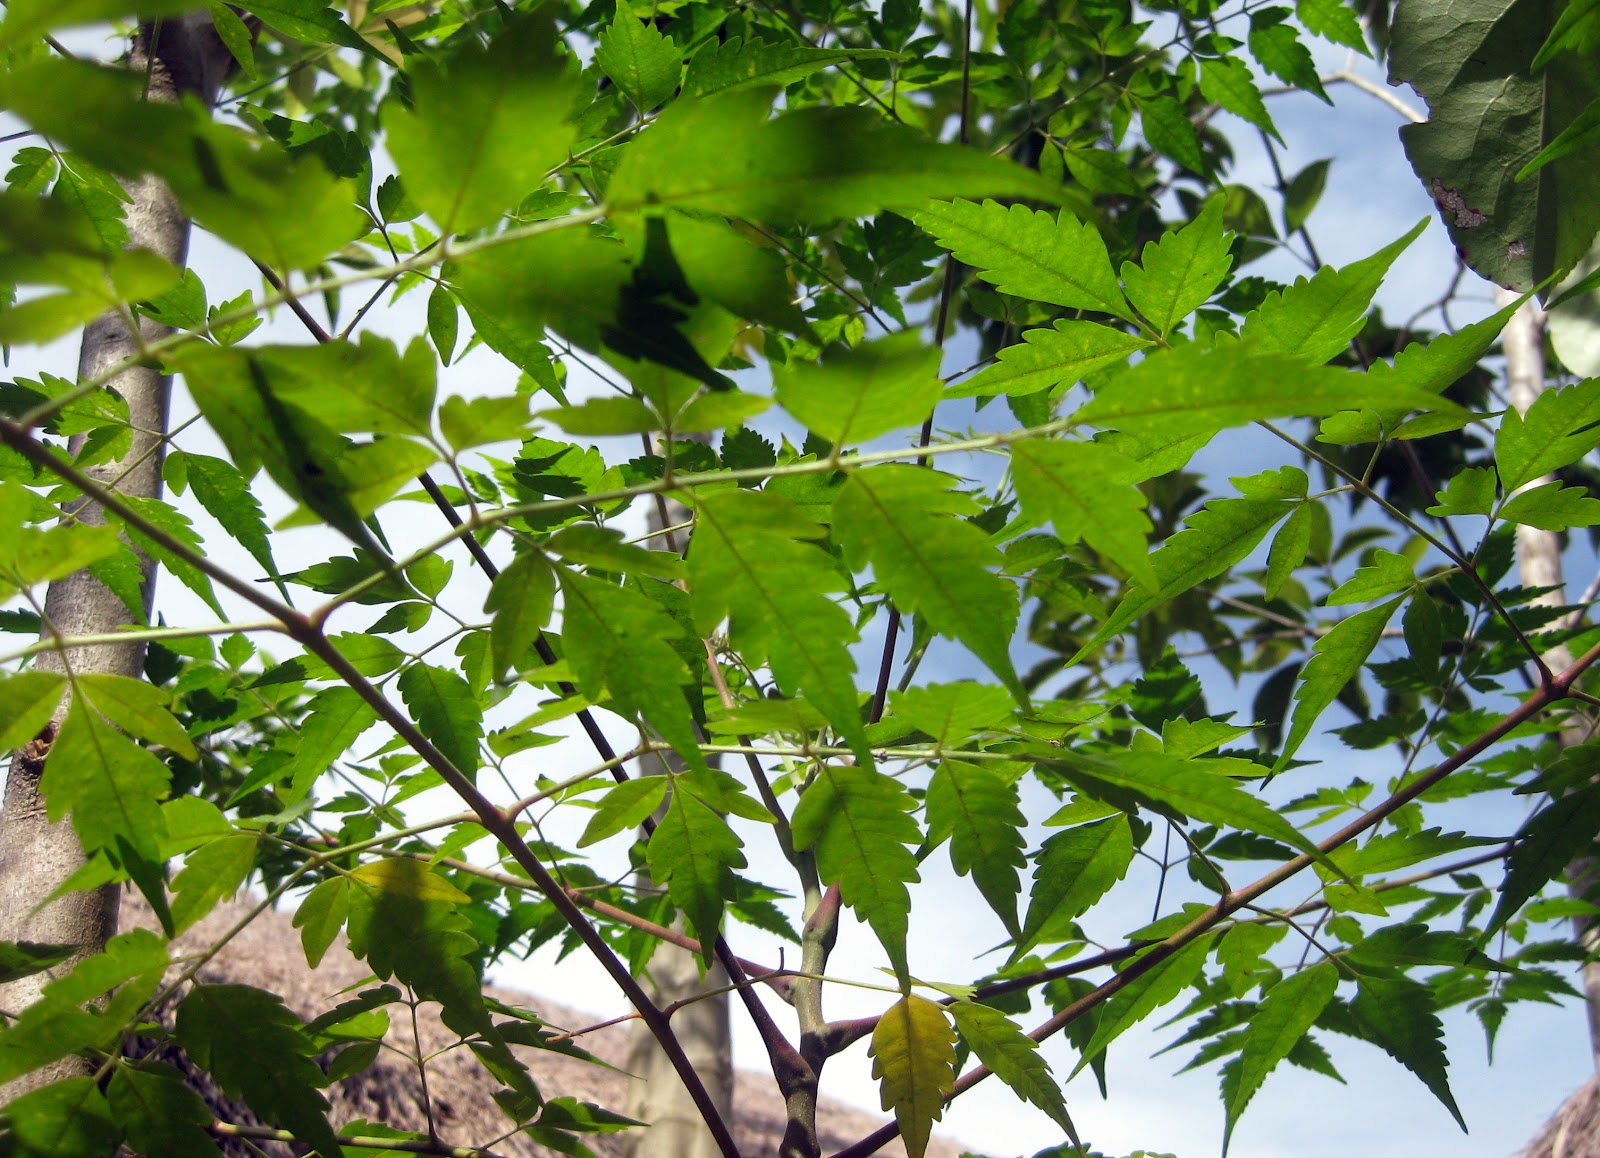 turning boholano neem leaves the neem tree azadirachta indica has been attracting worldwide attention due to its wide range of medicinal properties neem has been extensively used in